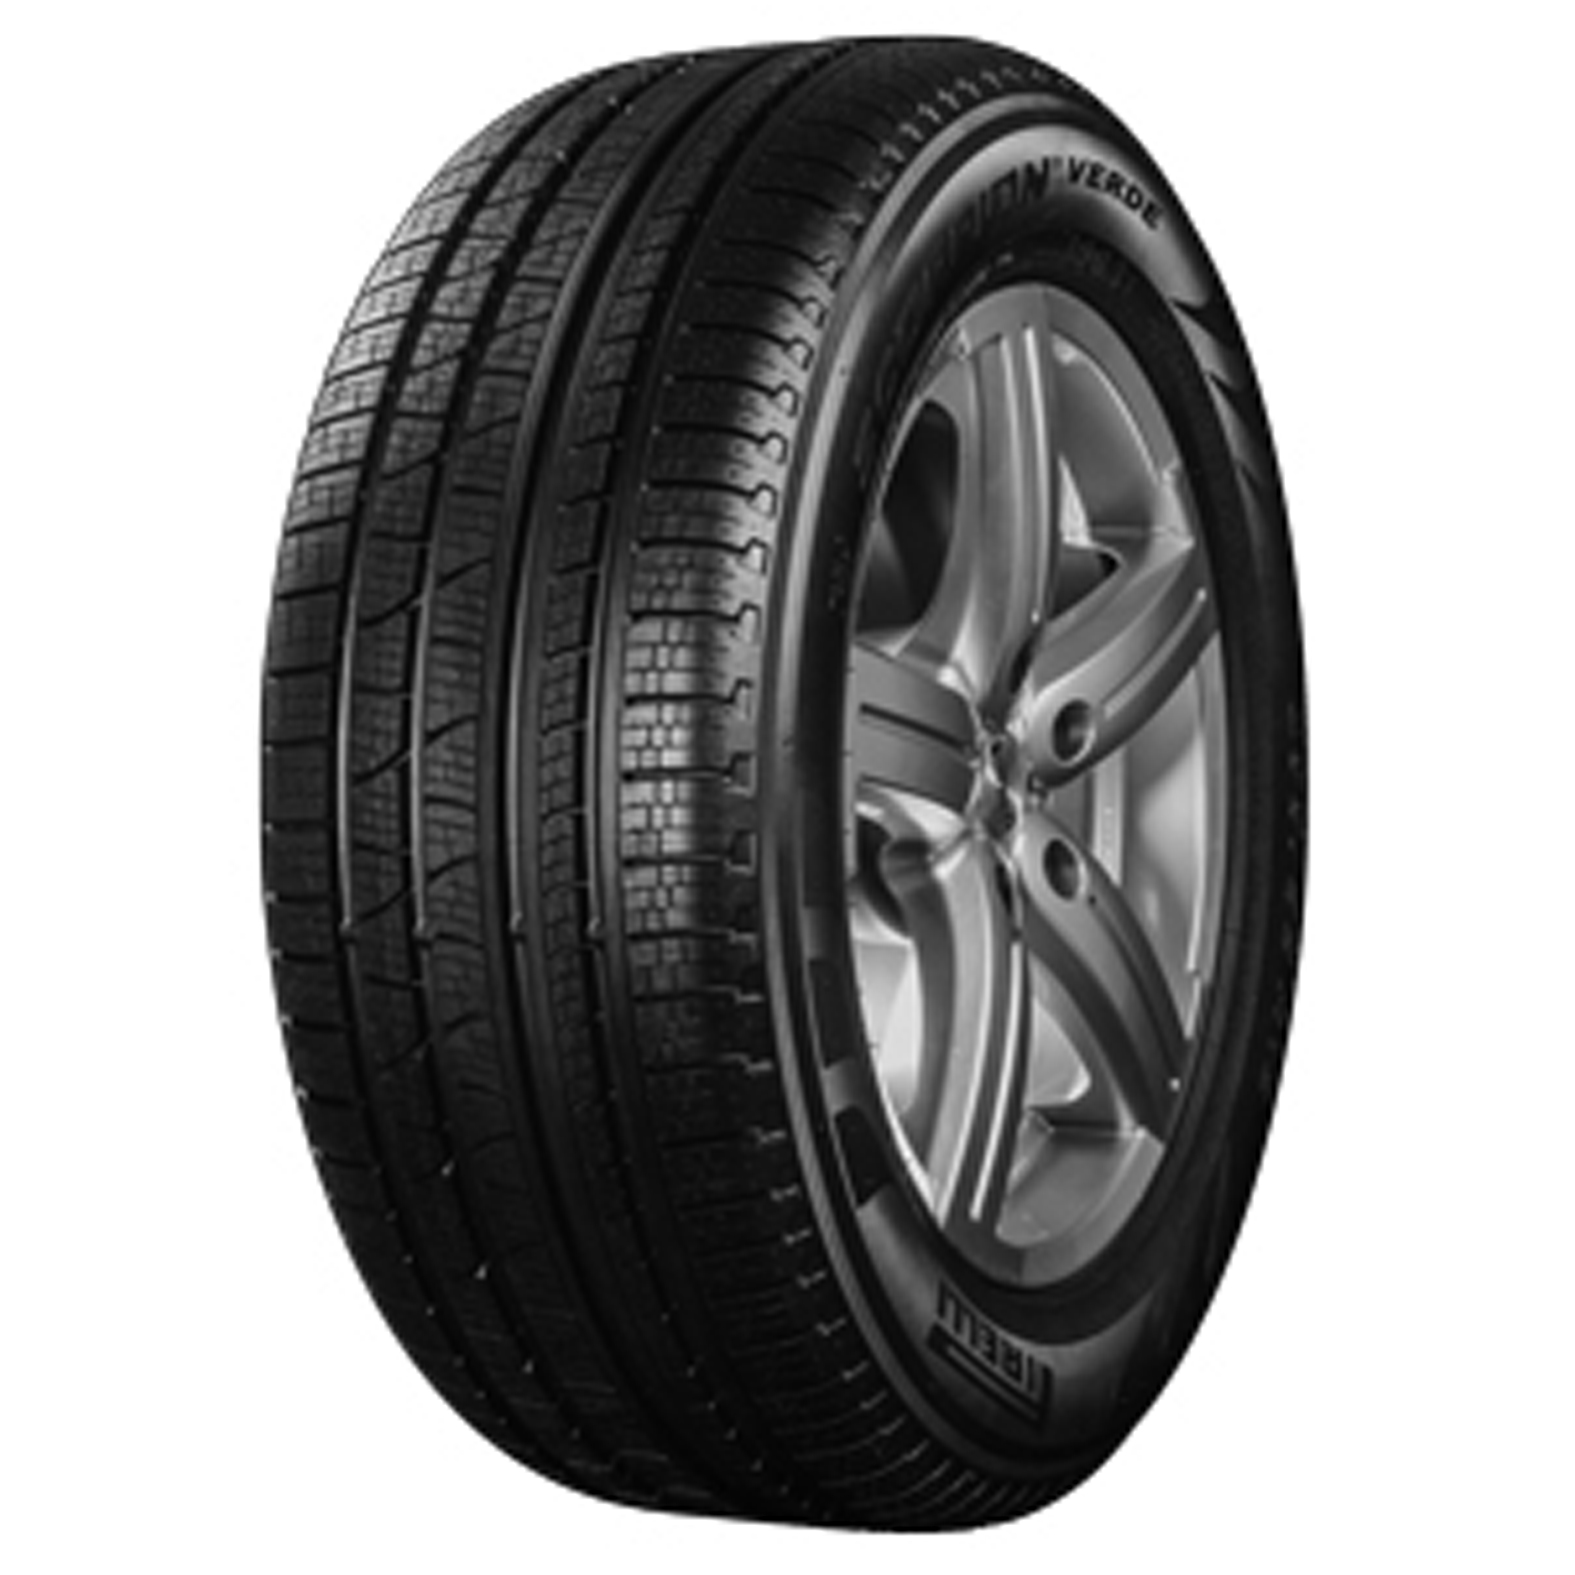 Pirelli Scorpion Verde A/S Plus tire - angle